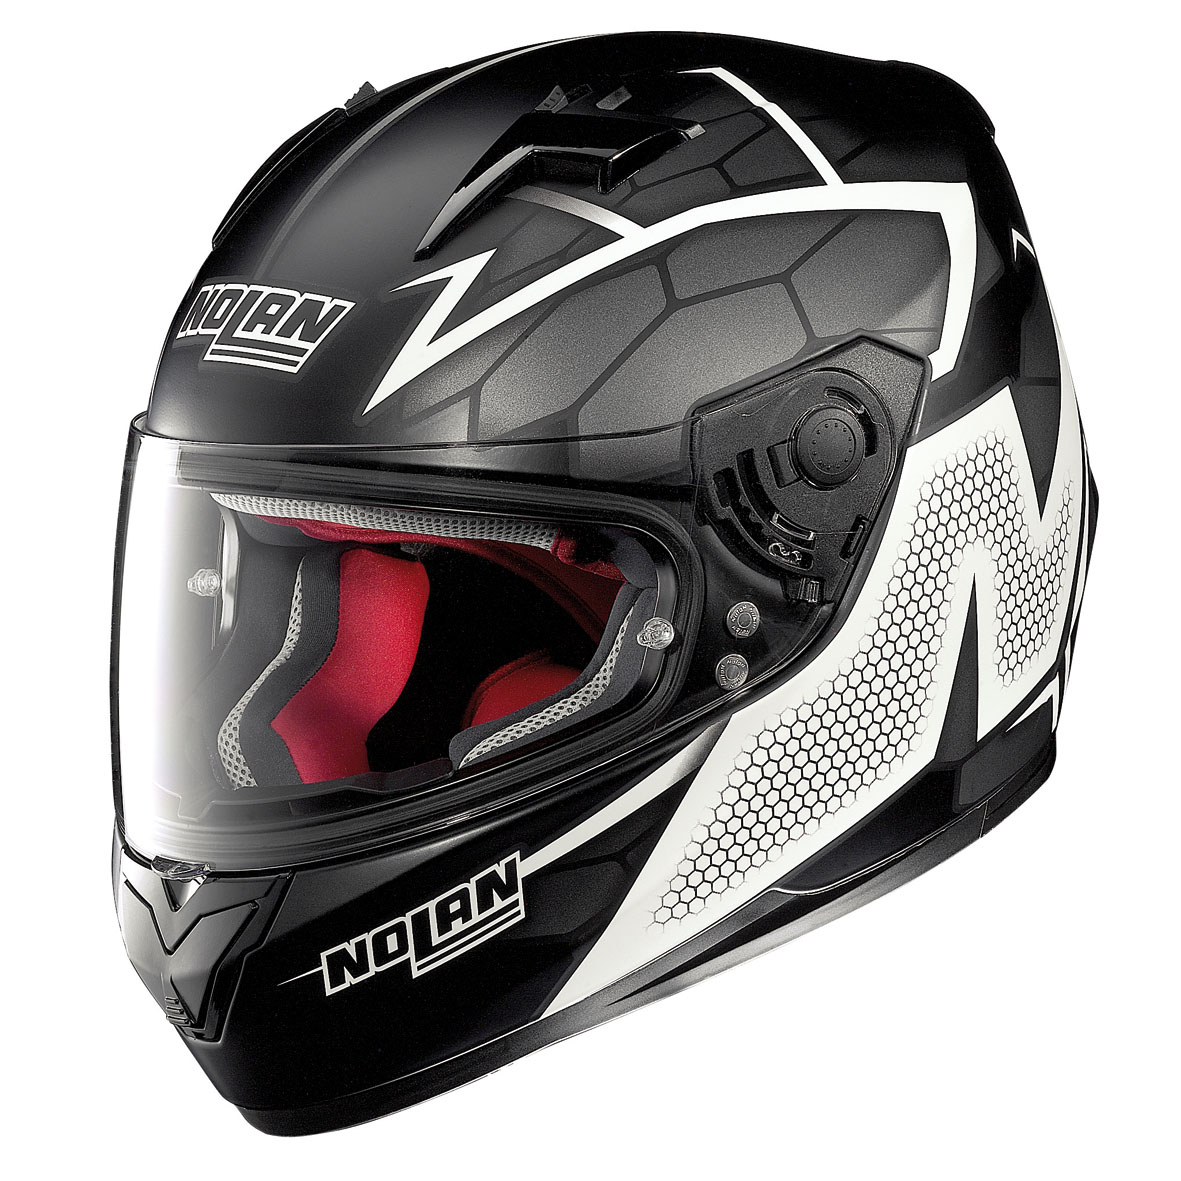 CASCO NOLAN N64 HEXAGON 88 FLAT BLACK